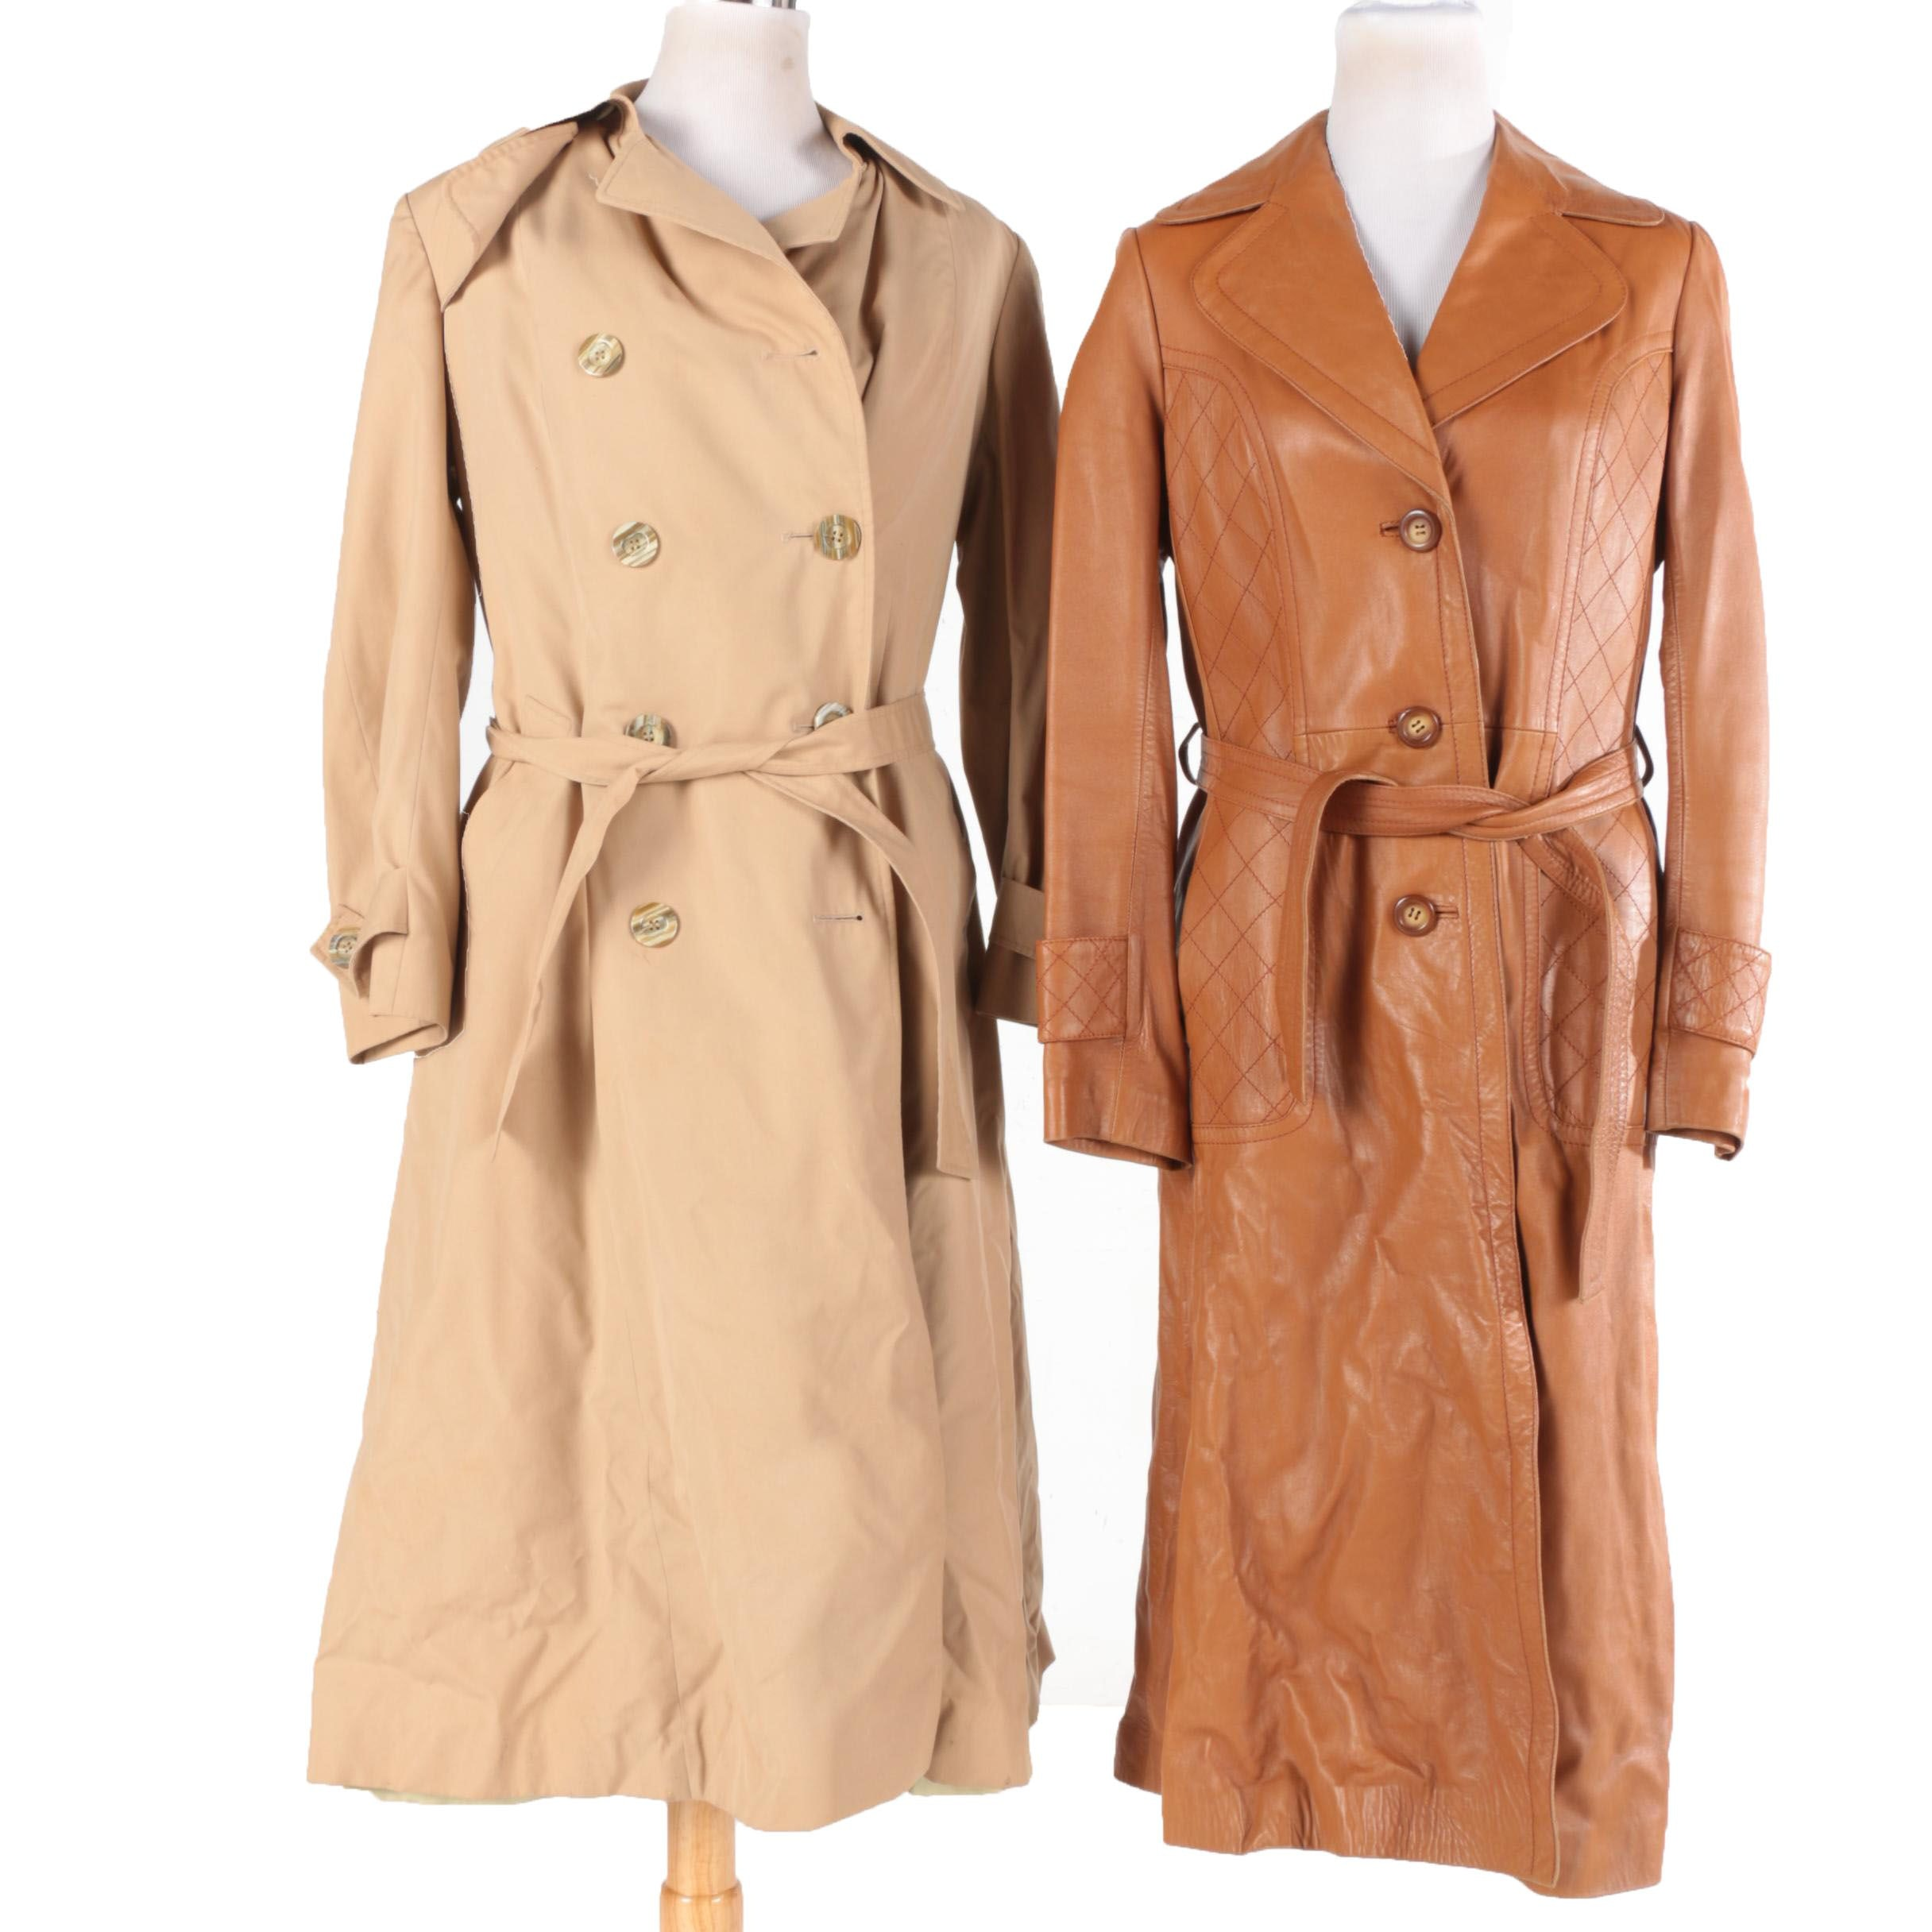 Rain Trench Coat and Leather Jacket